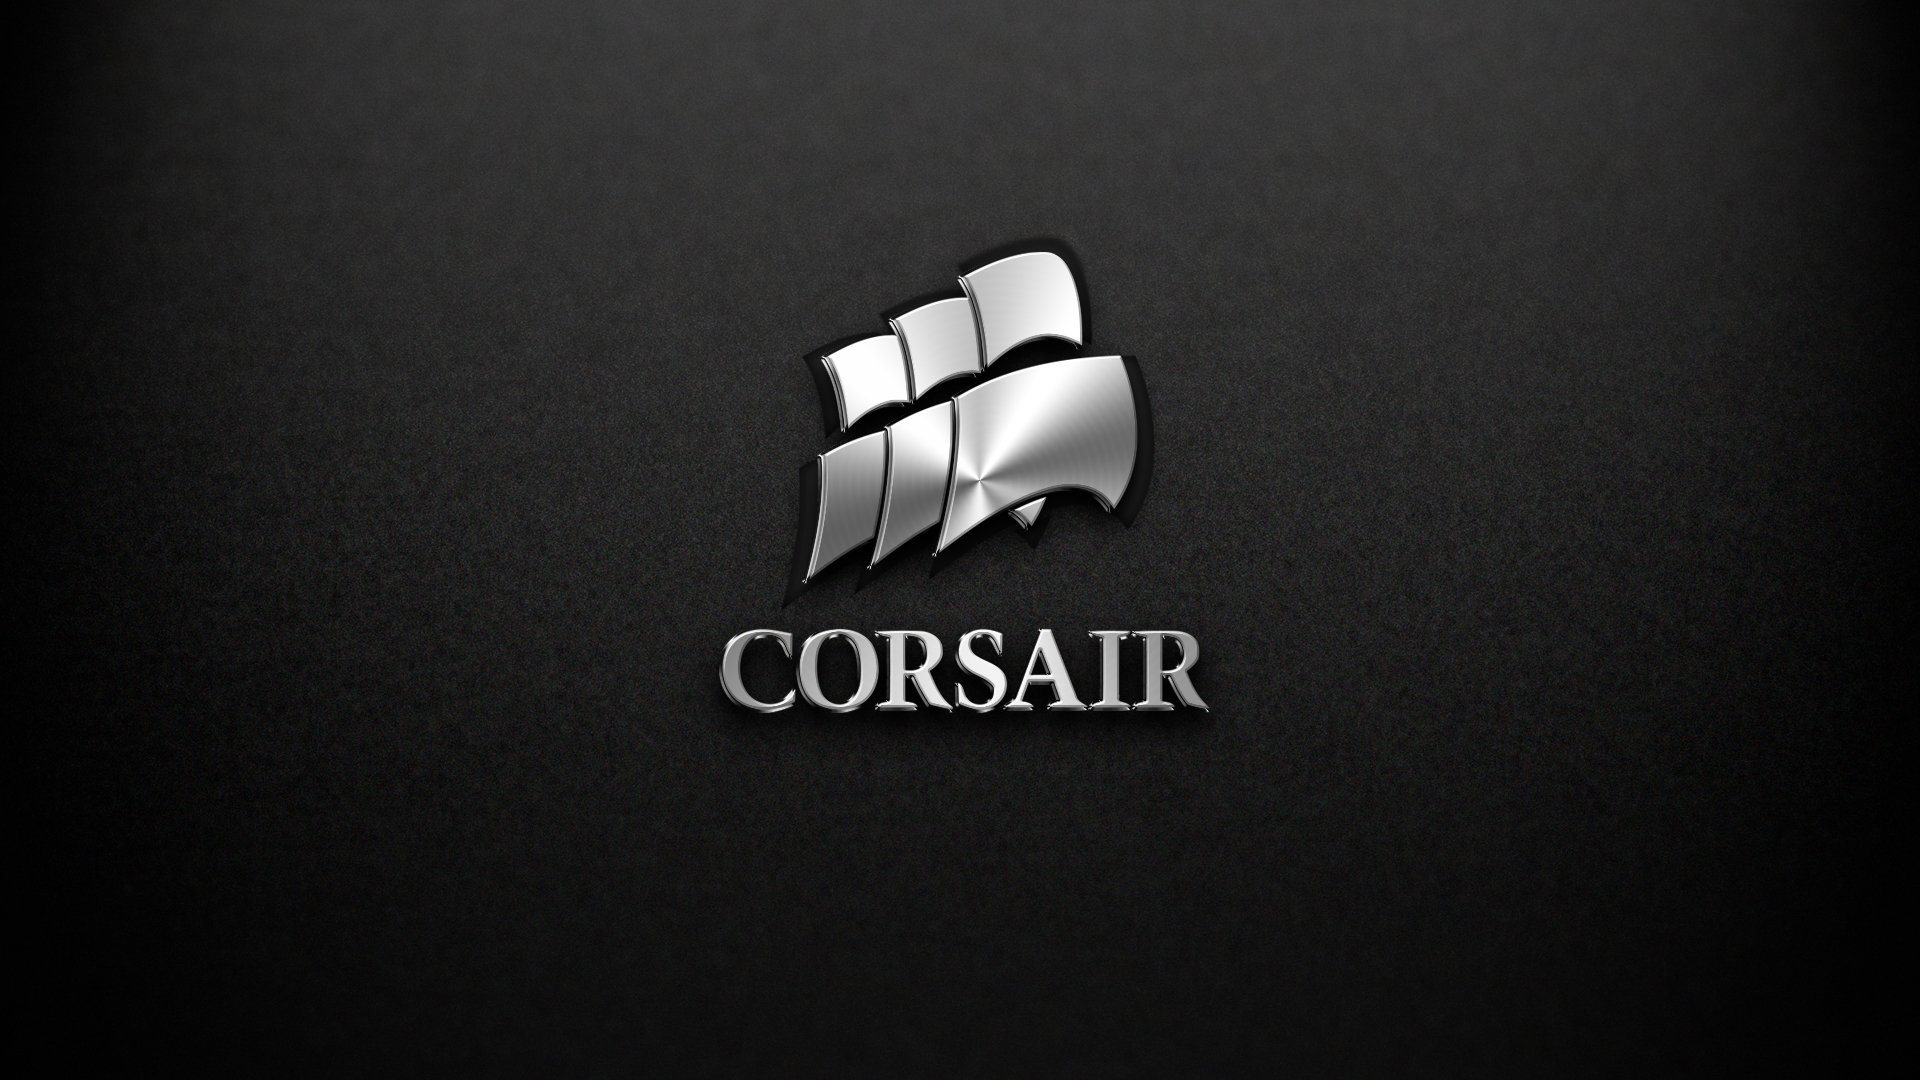 47 Corsair Wallpapers On Wallpapersafari